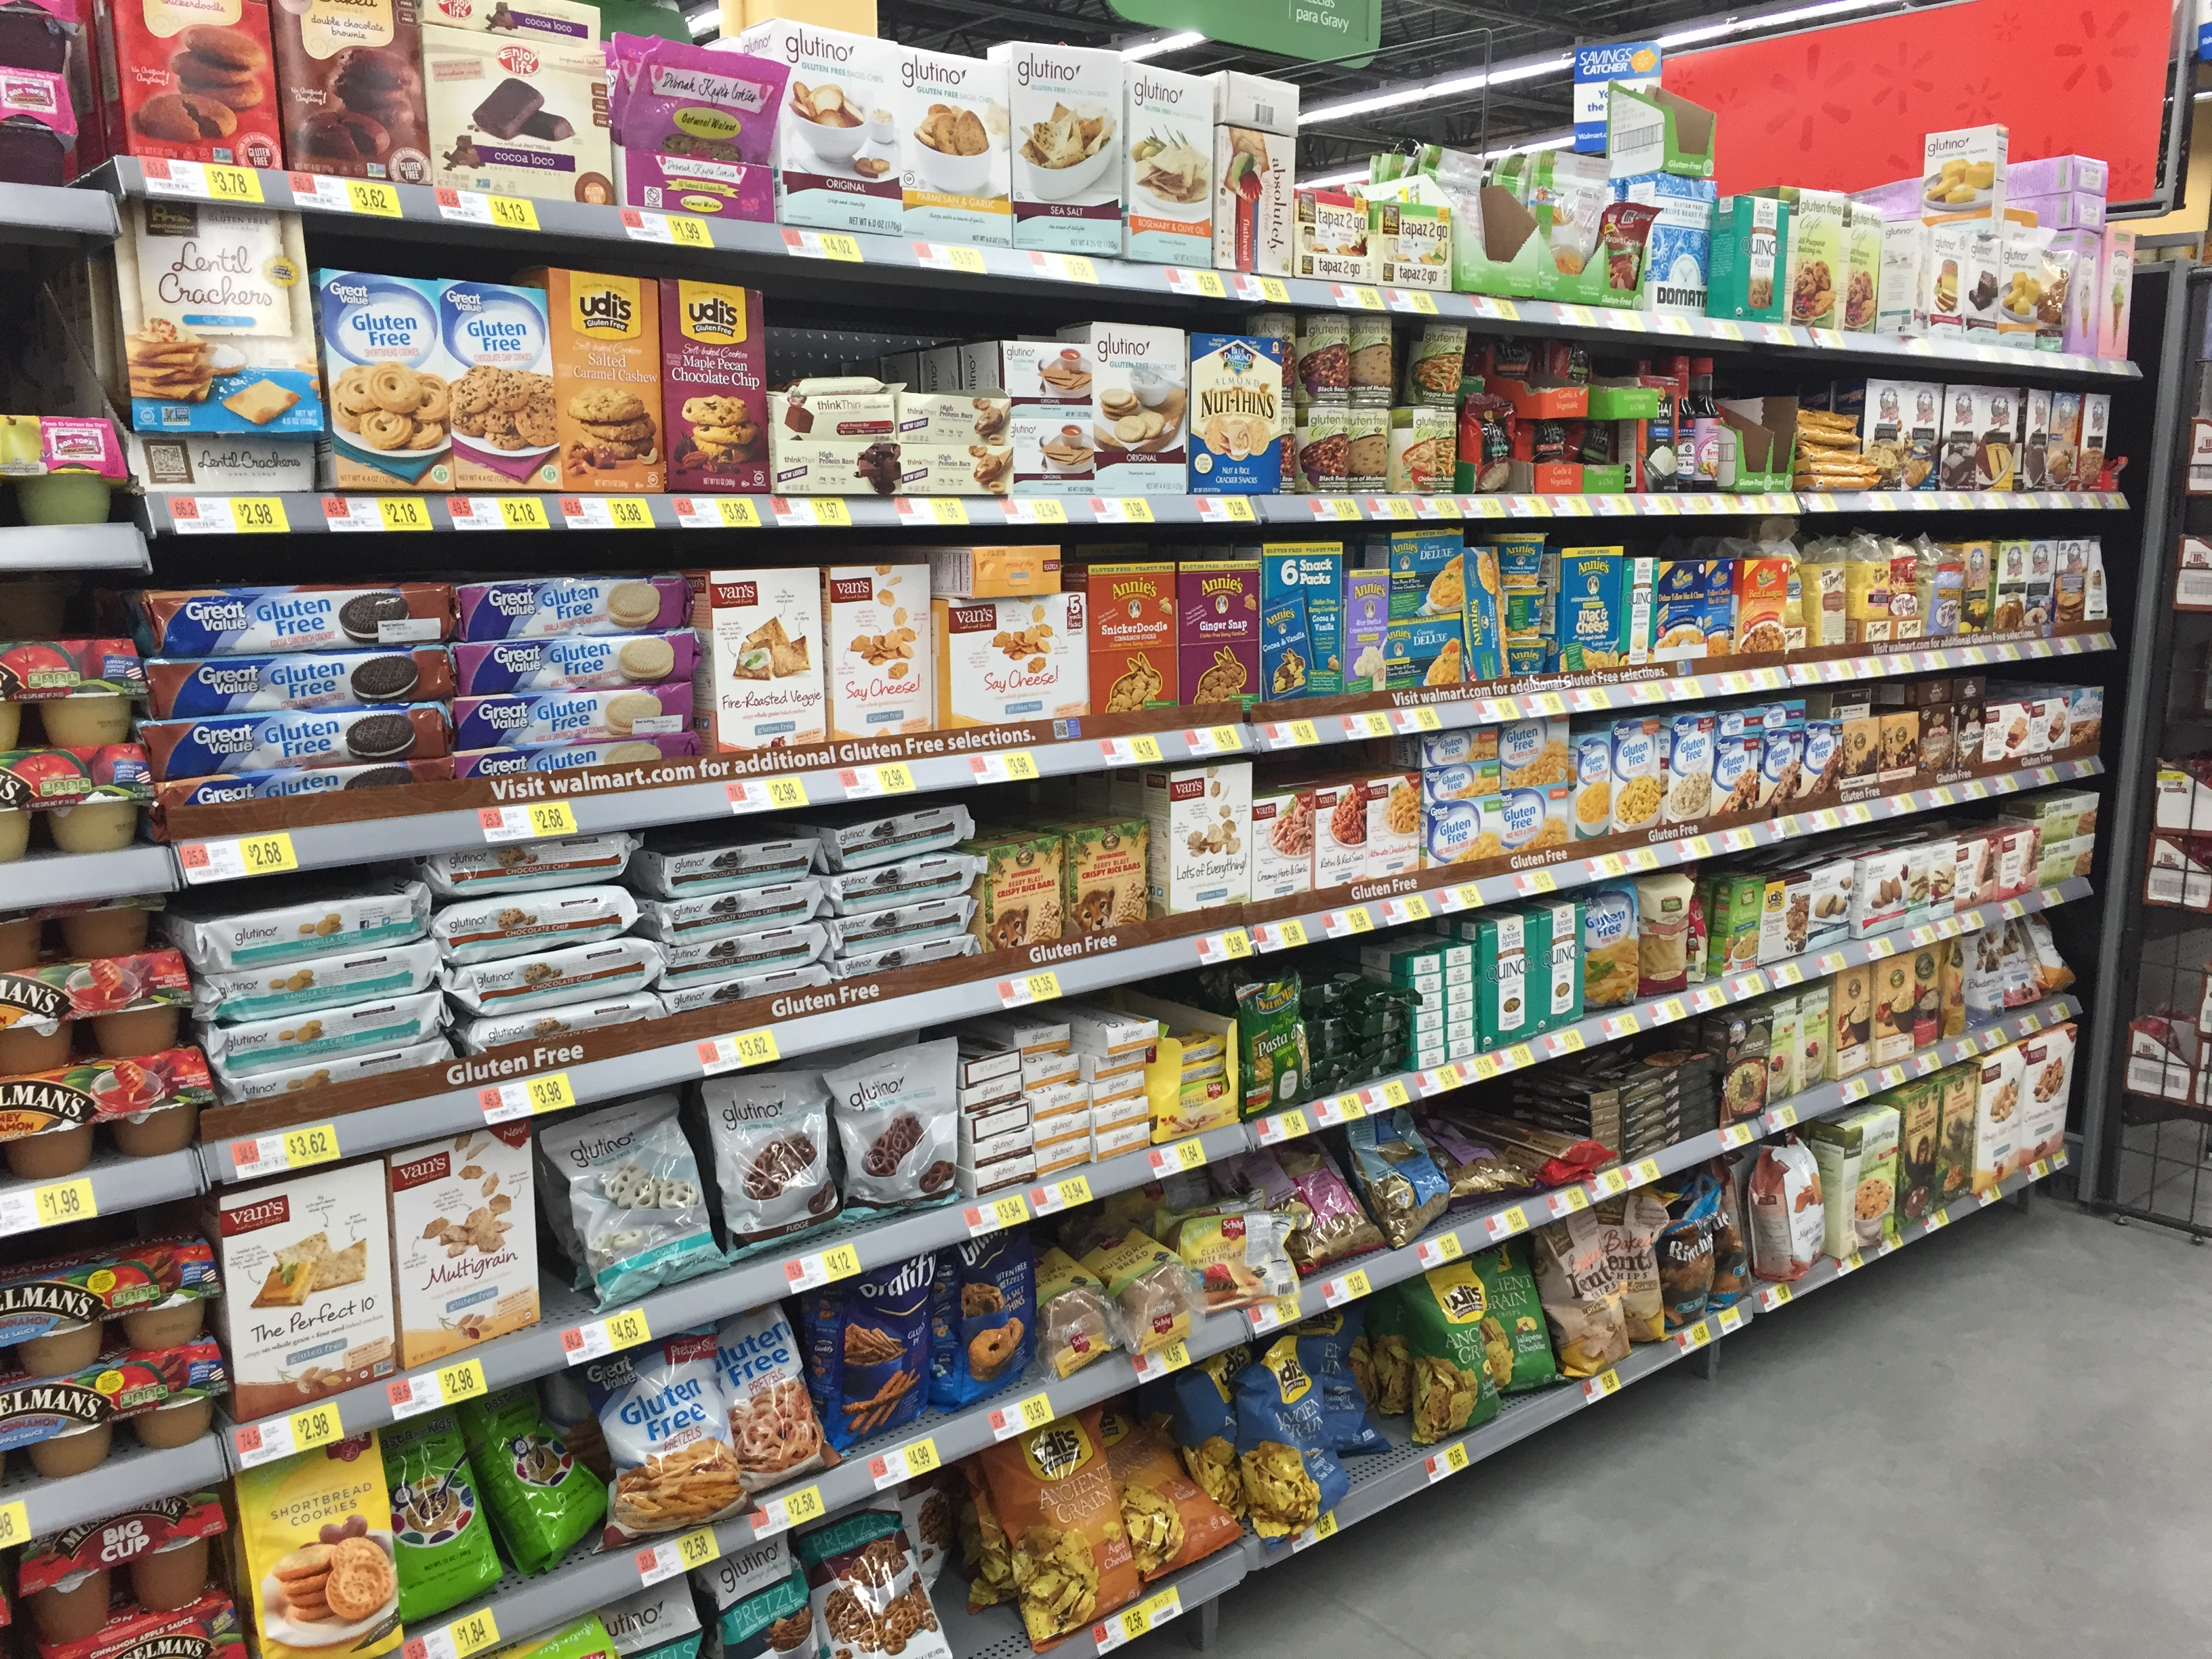 Surprising Wide Variety of Gluten-Free Offerings at ...